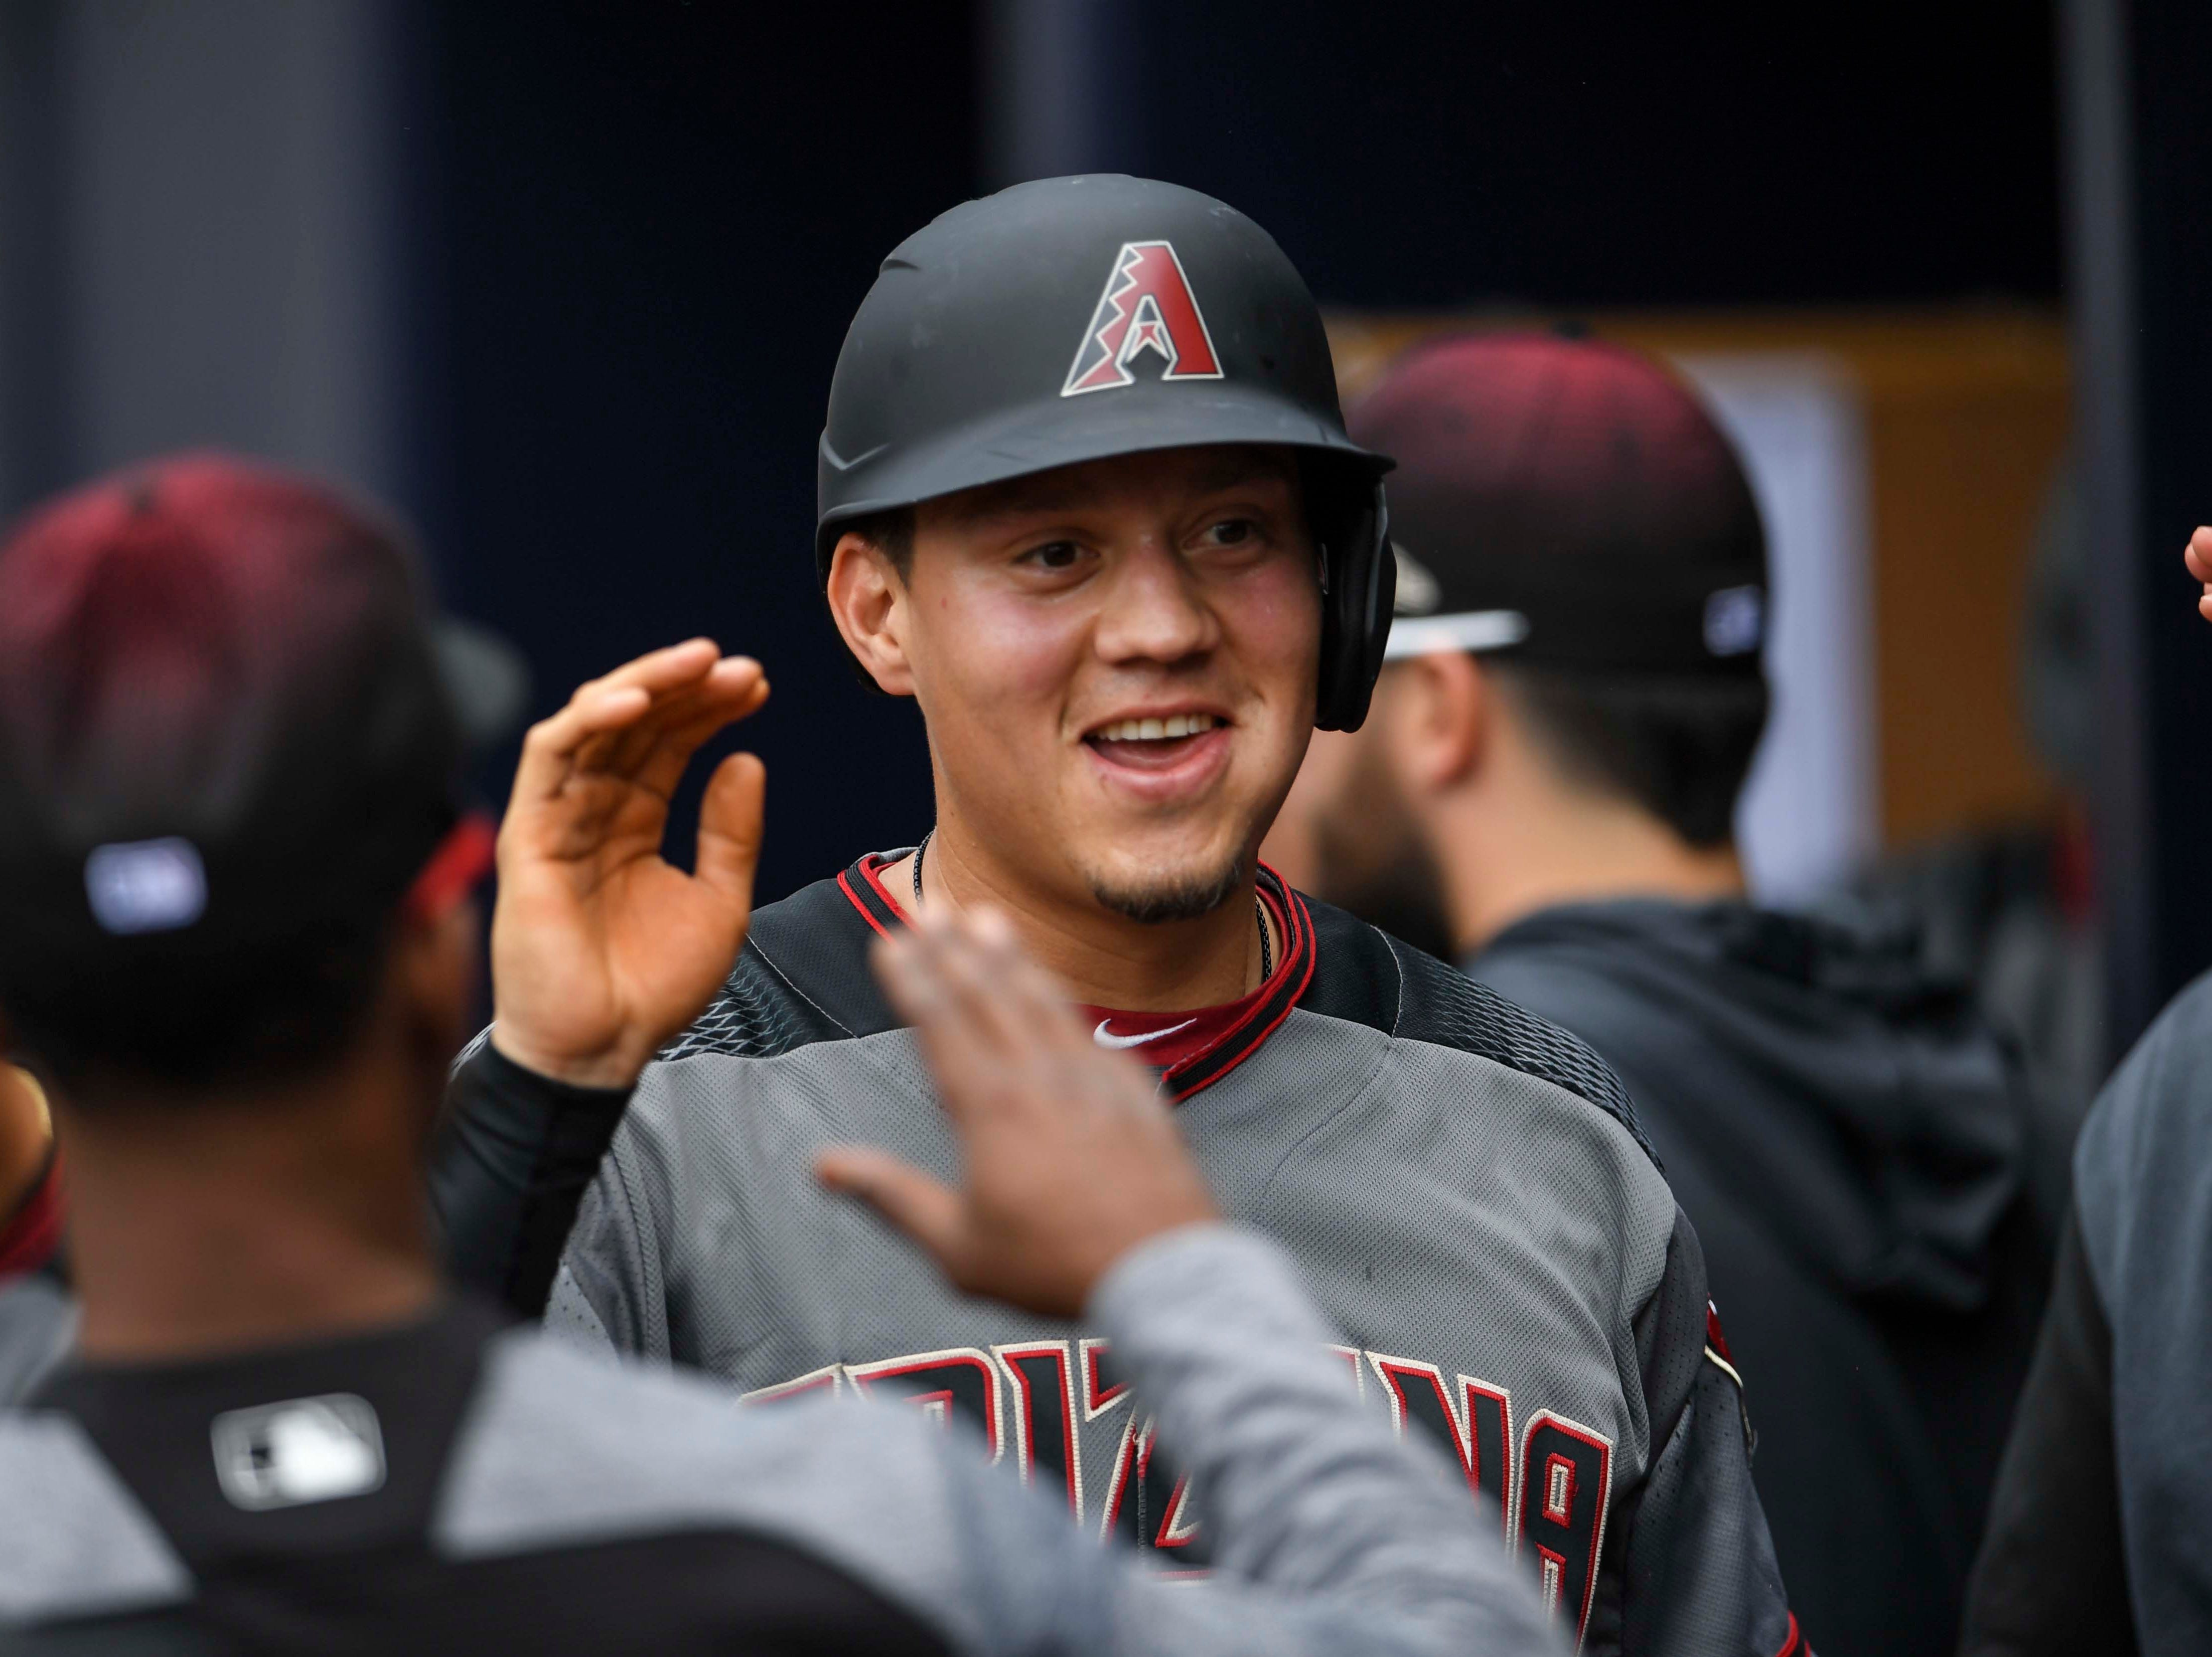 Apr 18, 2019; Atlanta, GA, USA; Arizona Diamondbacks second baseman Wilmer Flores (41) shown in the dugout after scoring a run against the Atlanta Braves during the first inning at SunTrust Park. Mandatory Credit: Dale Zanine-USA TODAY Sports